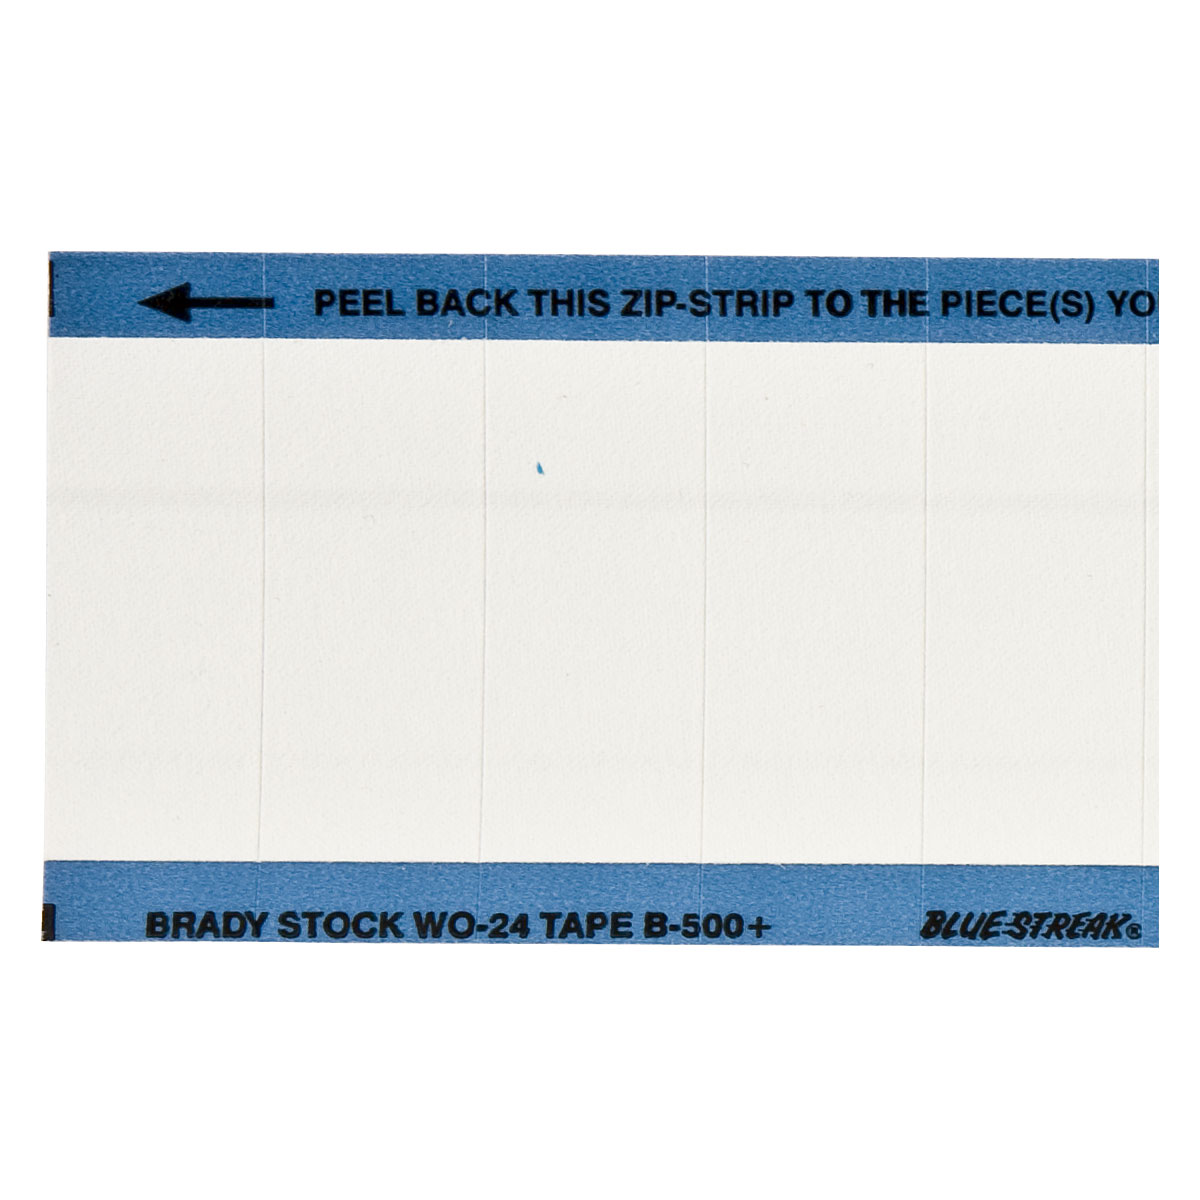 brady label templates - brady part wo 24 blank write on calibration labels